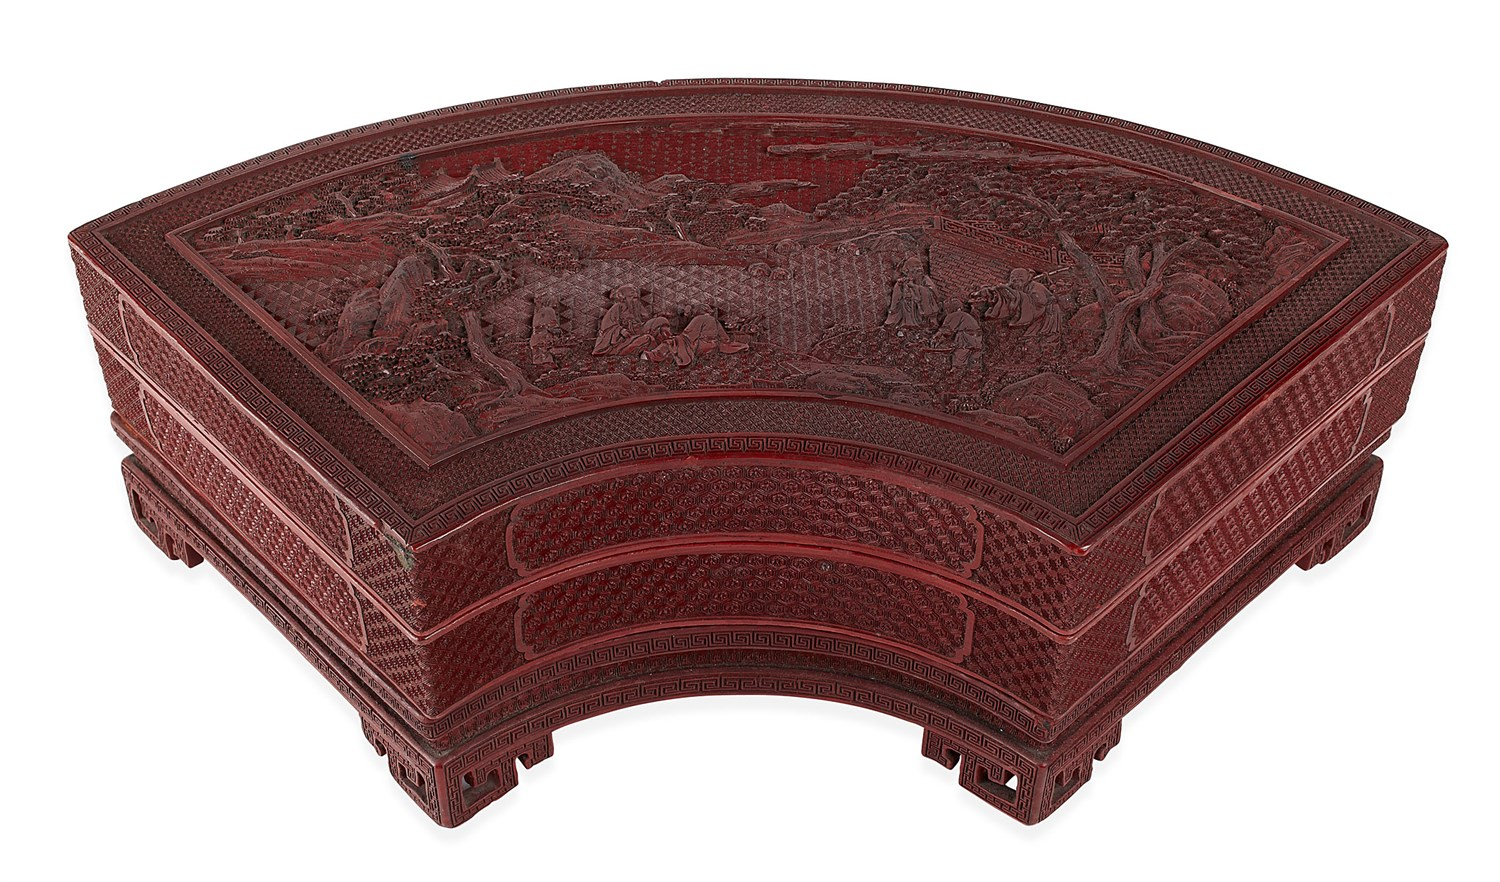 247 - CHINESE CINNABAR LACQUER AND PORCELAIN SUPPER BOX